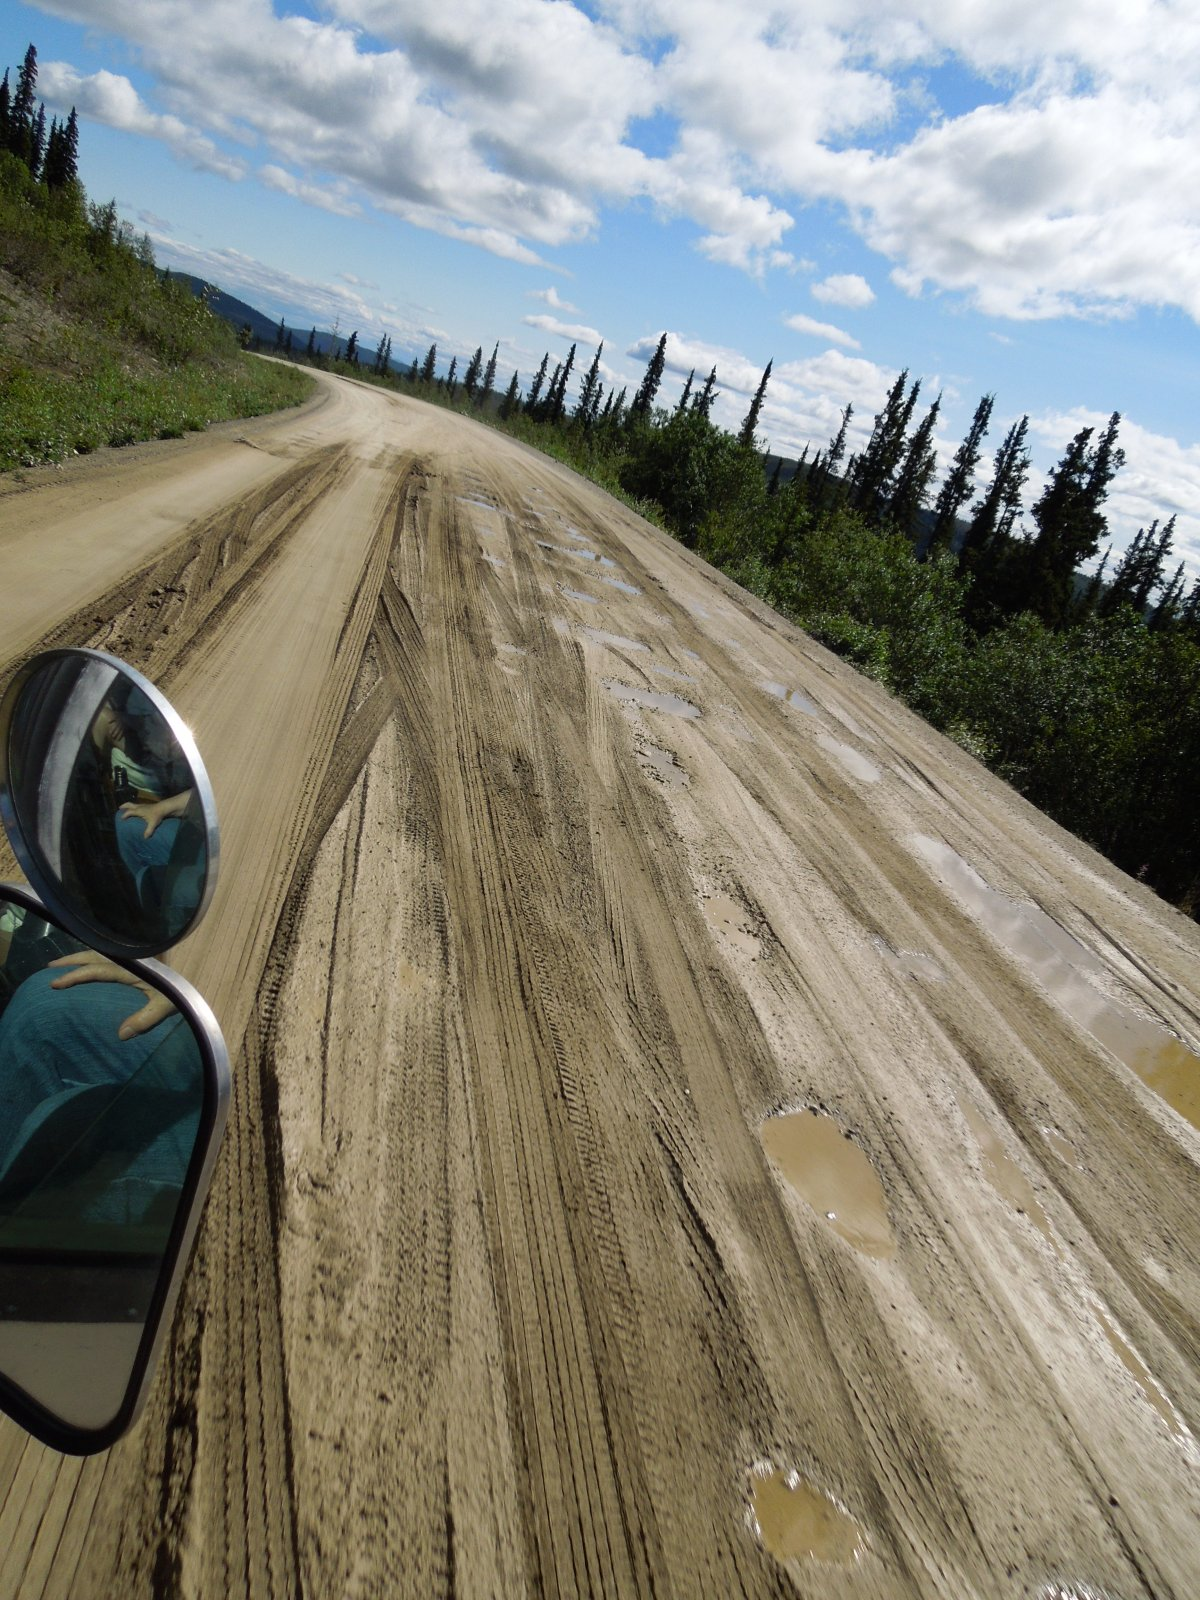 Click image for larger version  Name:Tok to Chicken to Dawson City 262.jpg Views:63 Size:431.4 KB ID:221645